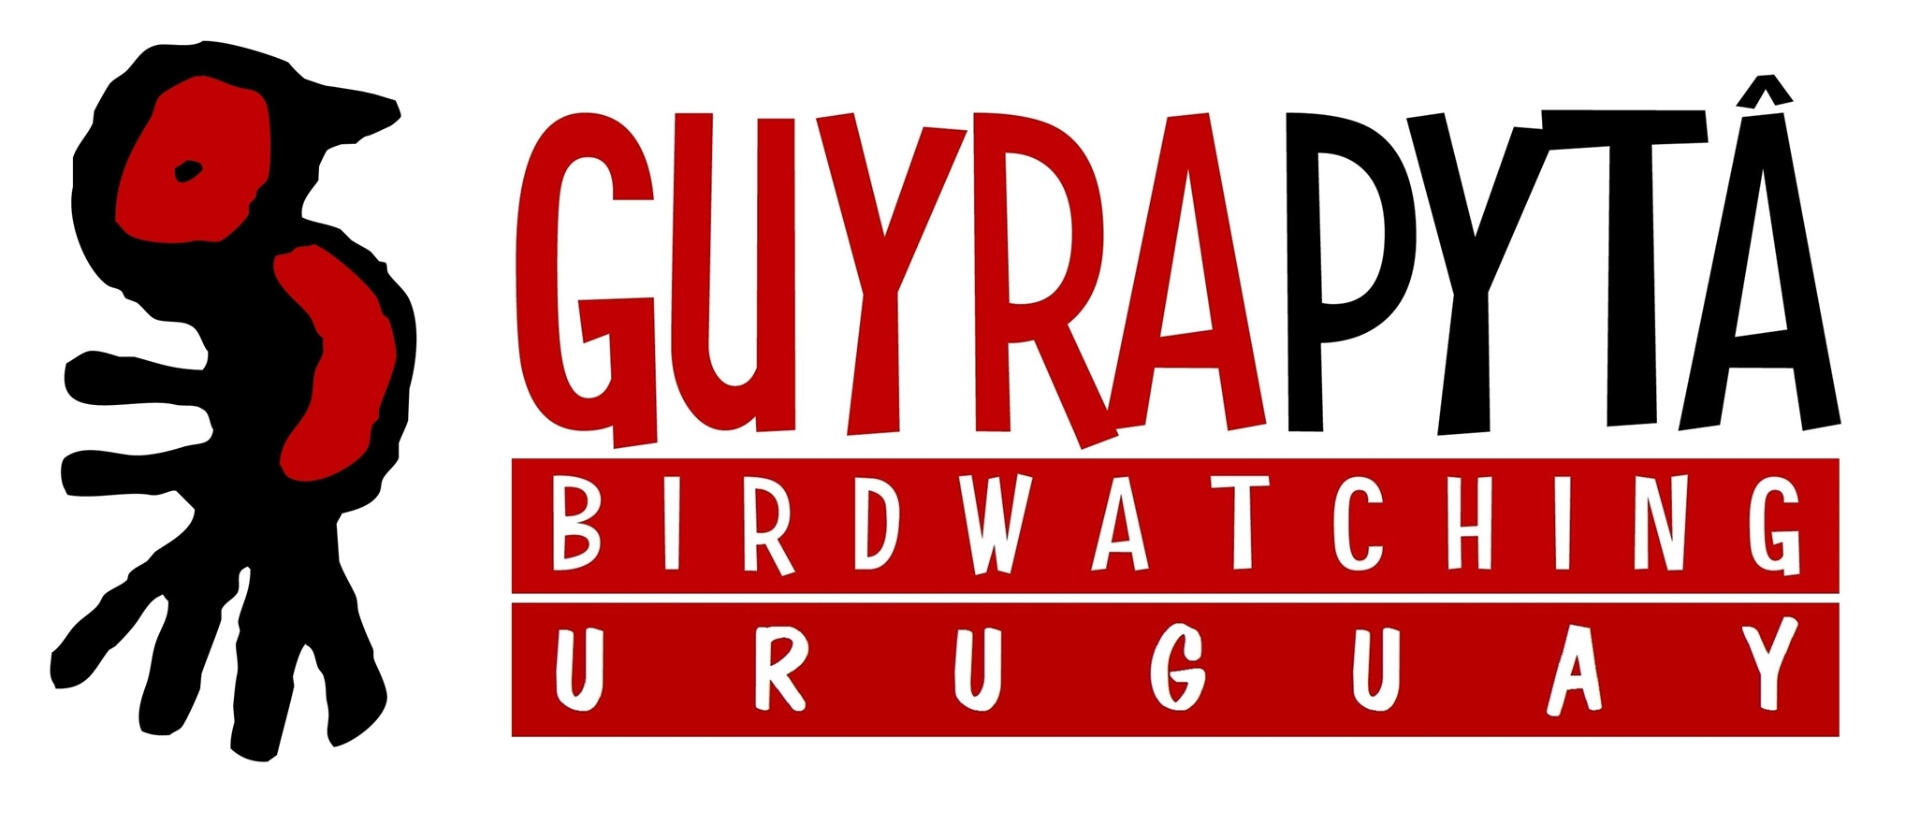 Birdwatching Tours in Uruguay